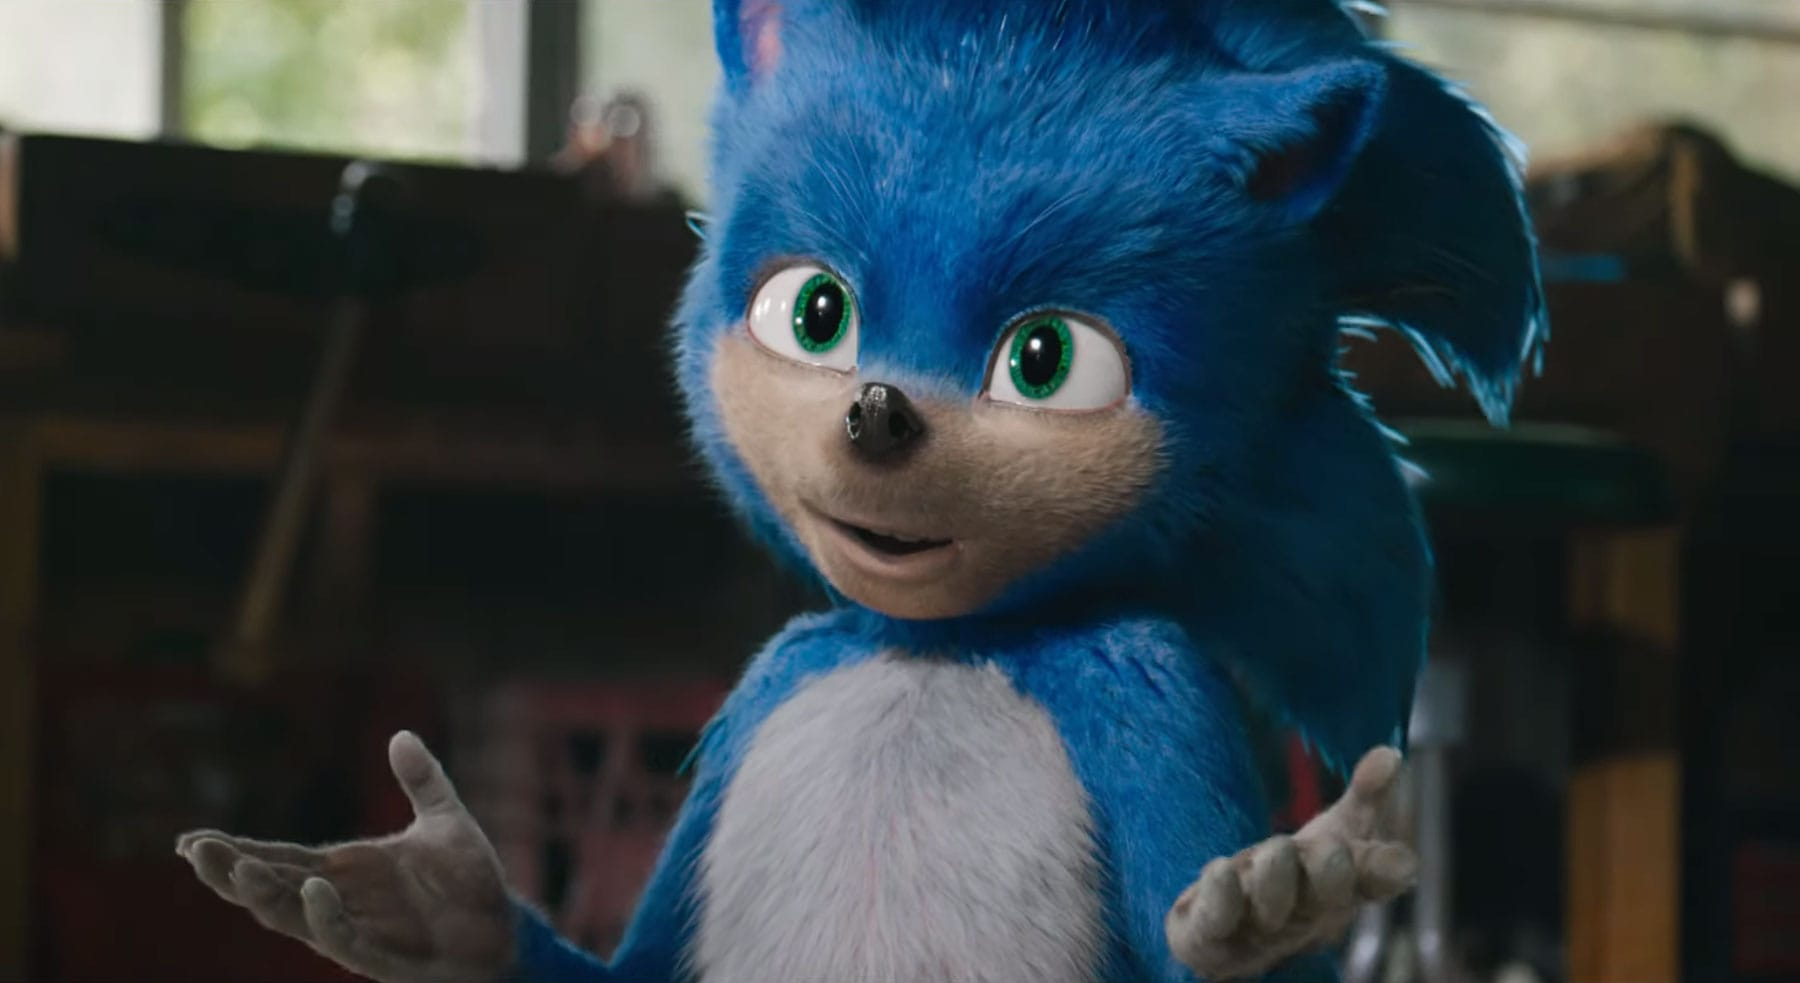 Watch the first trailer for the live-action 'Sonic the Hedgehog' movie